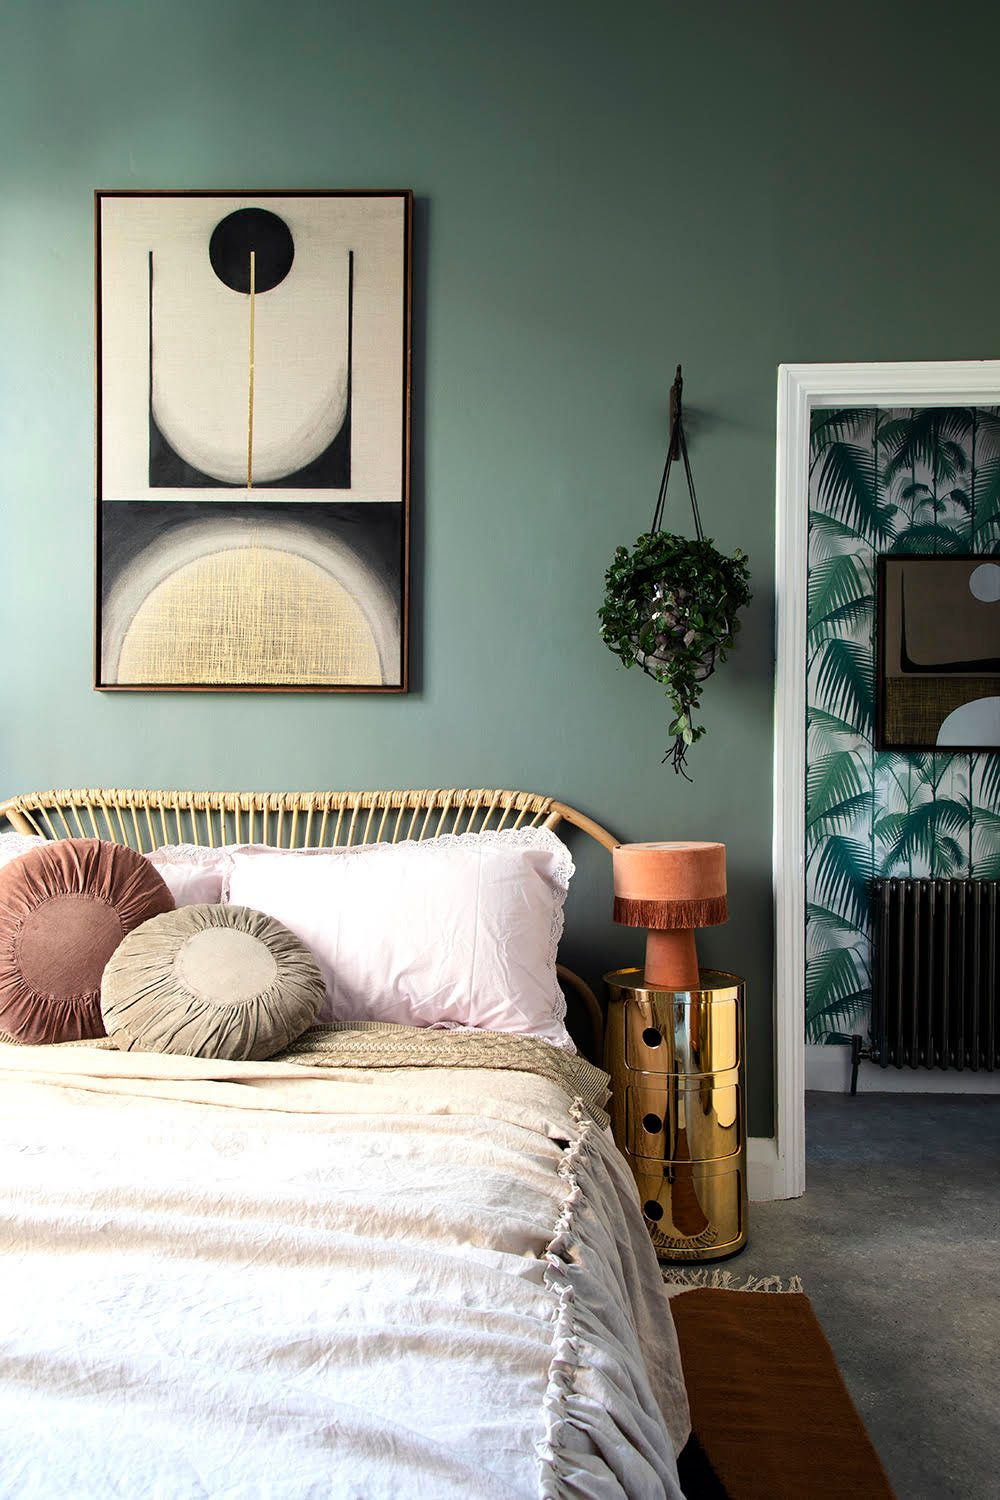 Interior Design Colour Trends 2019 – From Spiced Honey To Botanical